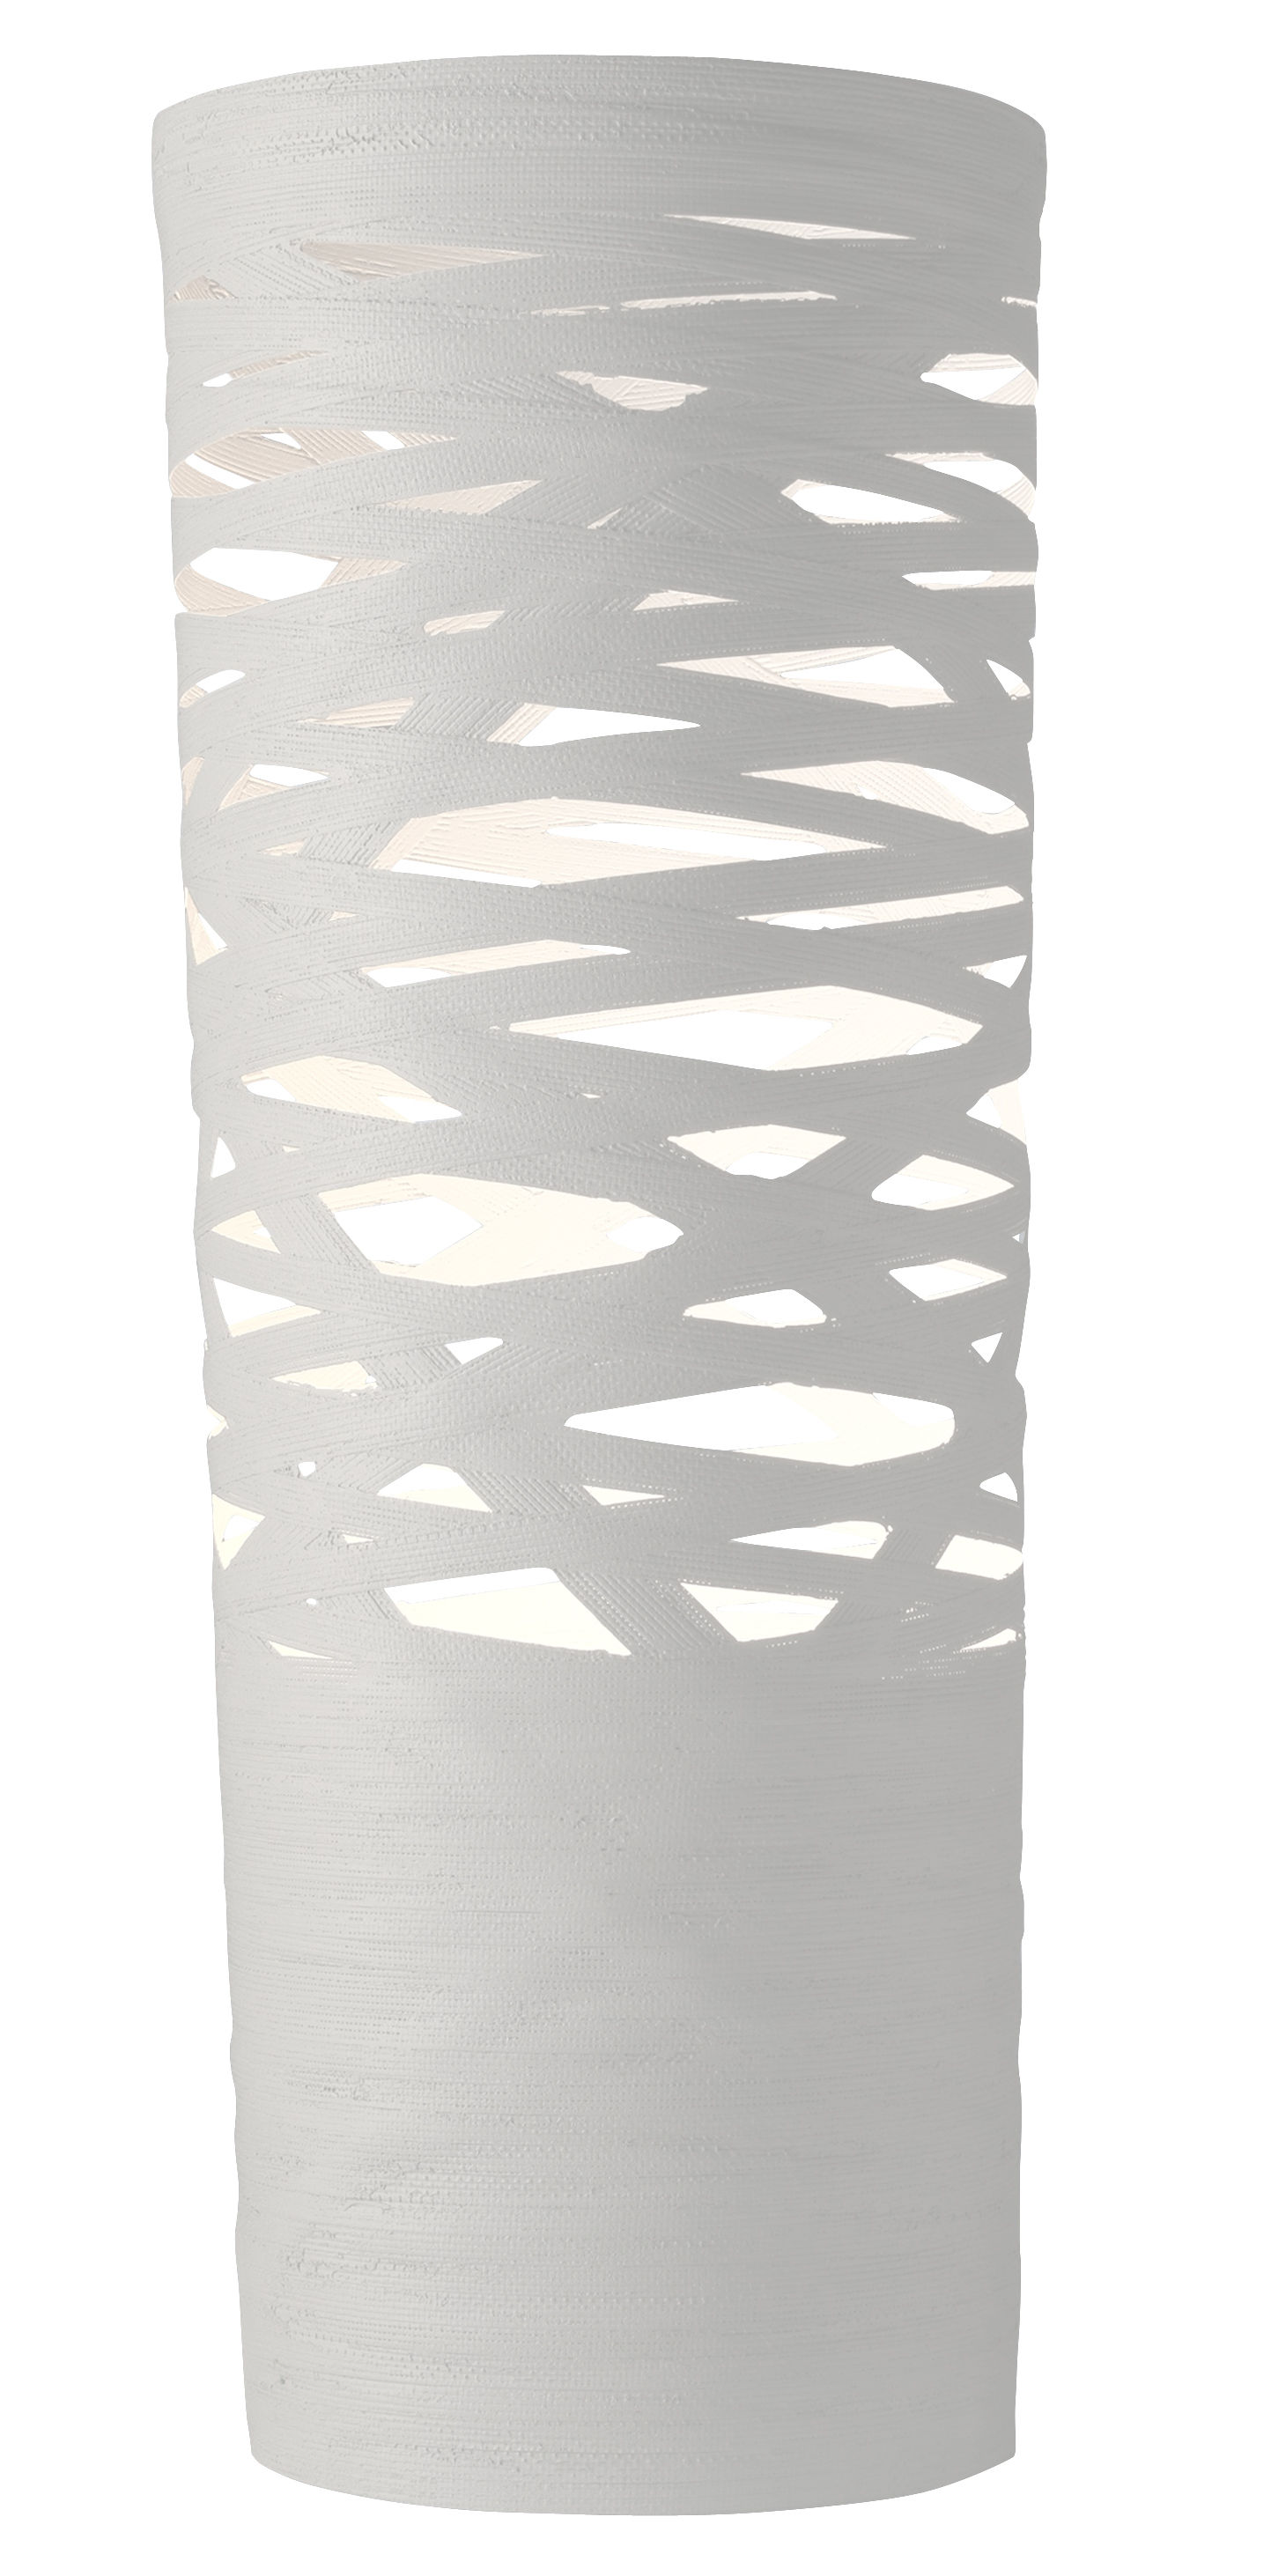 Lighting - Table Lamps - Tress Table lamp - H 61 cm by Foscarini - White - Composite material, Fibreglass